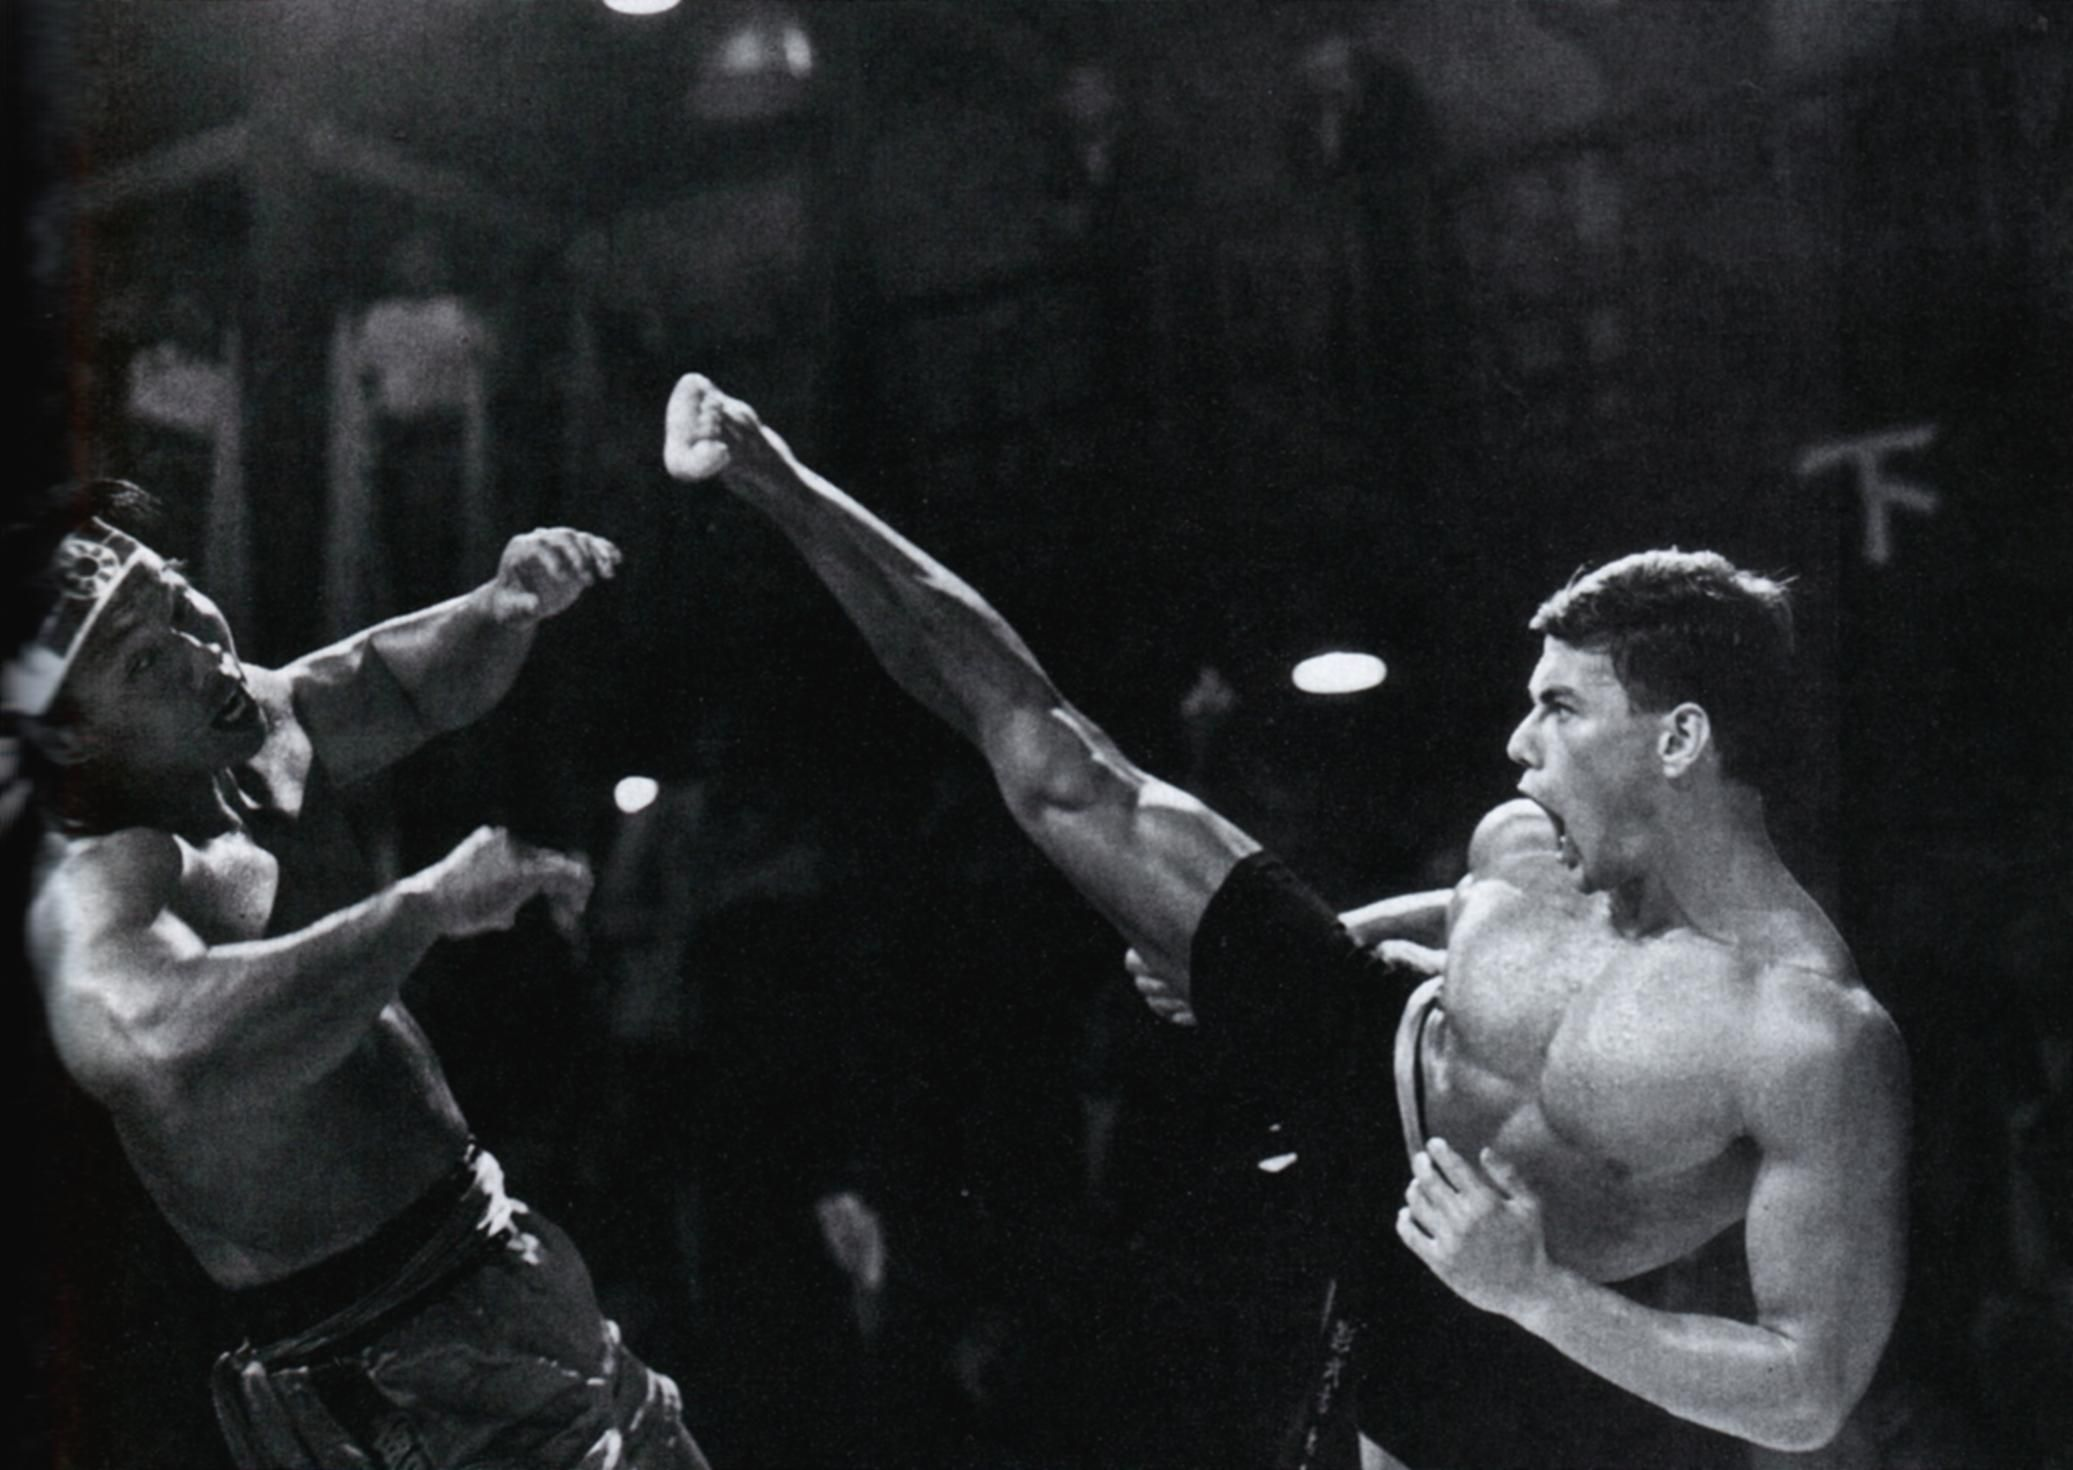 766aa82b98358d0e0186f3f1fb792f0e 25 Crotch-Punching Facts About Jean-Claude Van Damme's 1988 Film Bloodsport